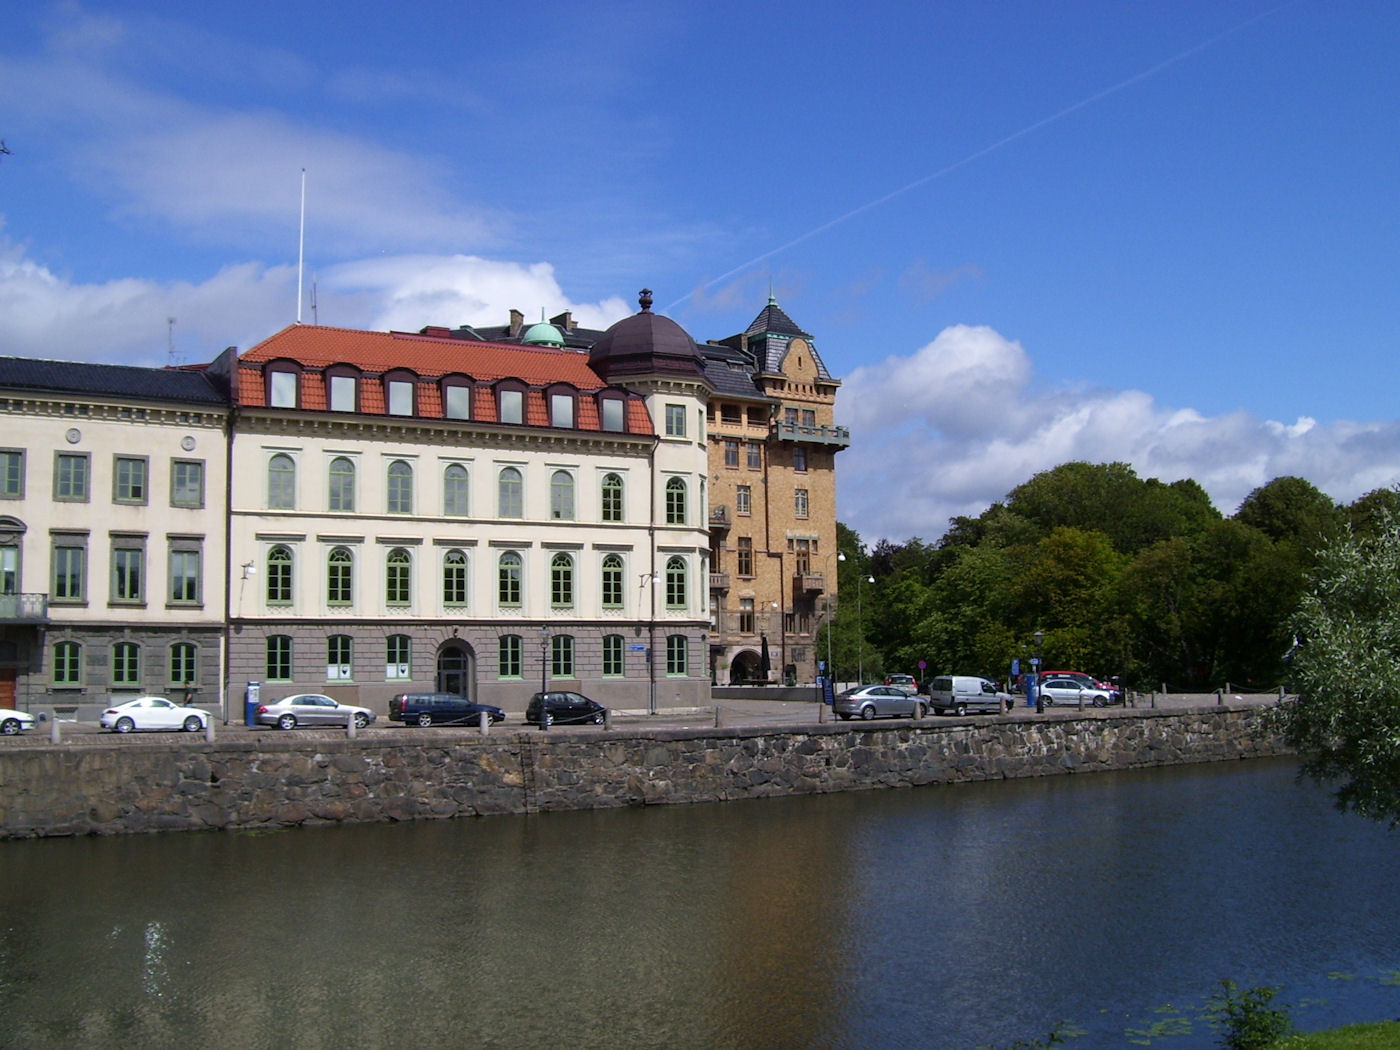 Gothenburg canal and architecture